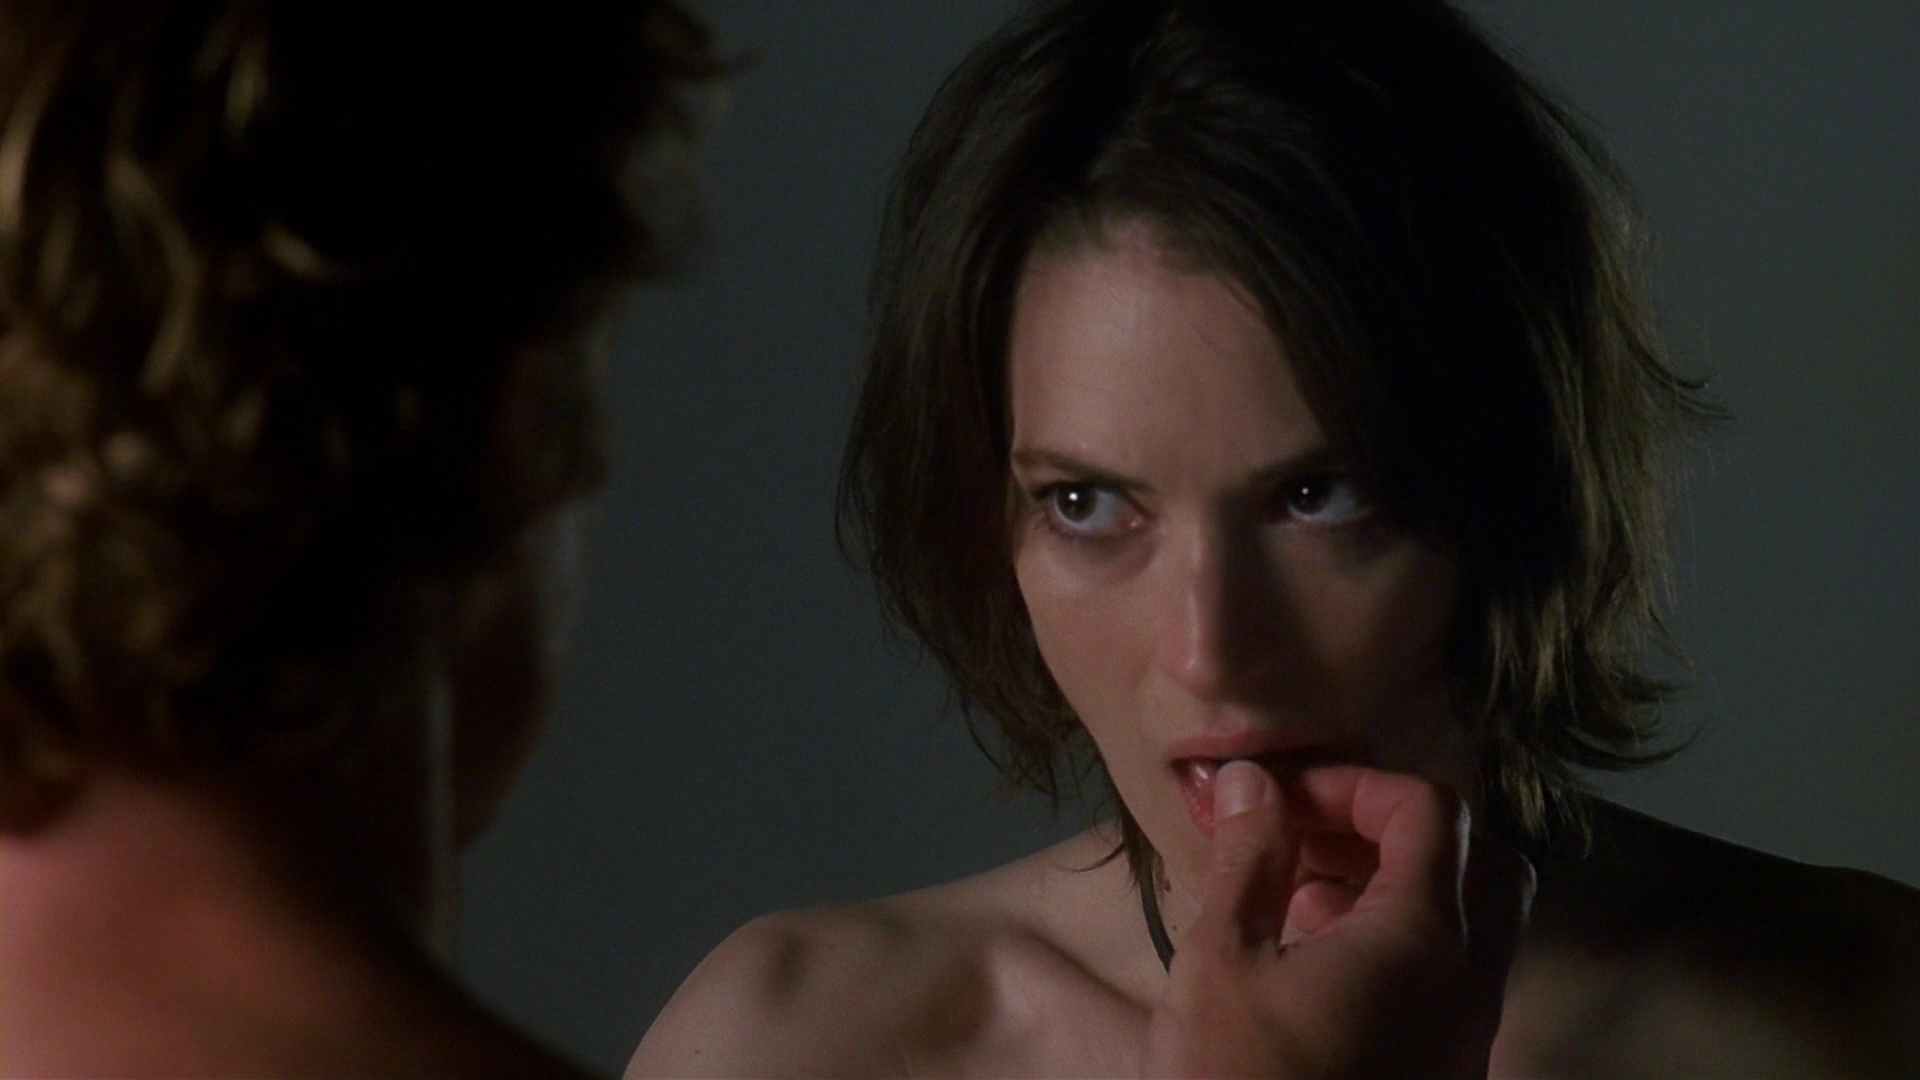 winona ryder naked sex and death